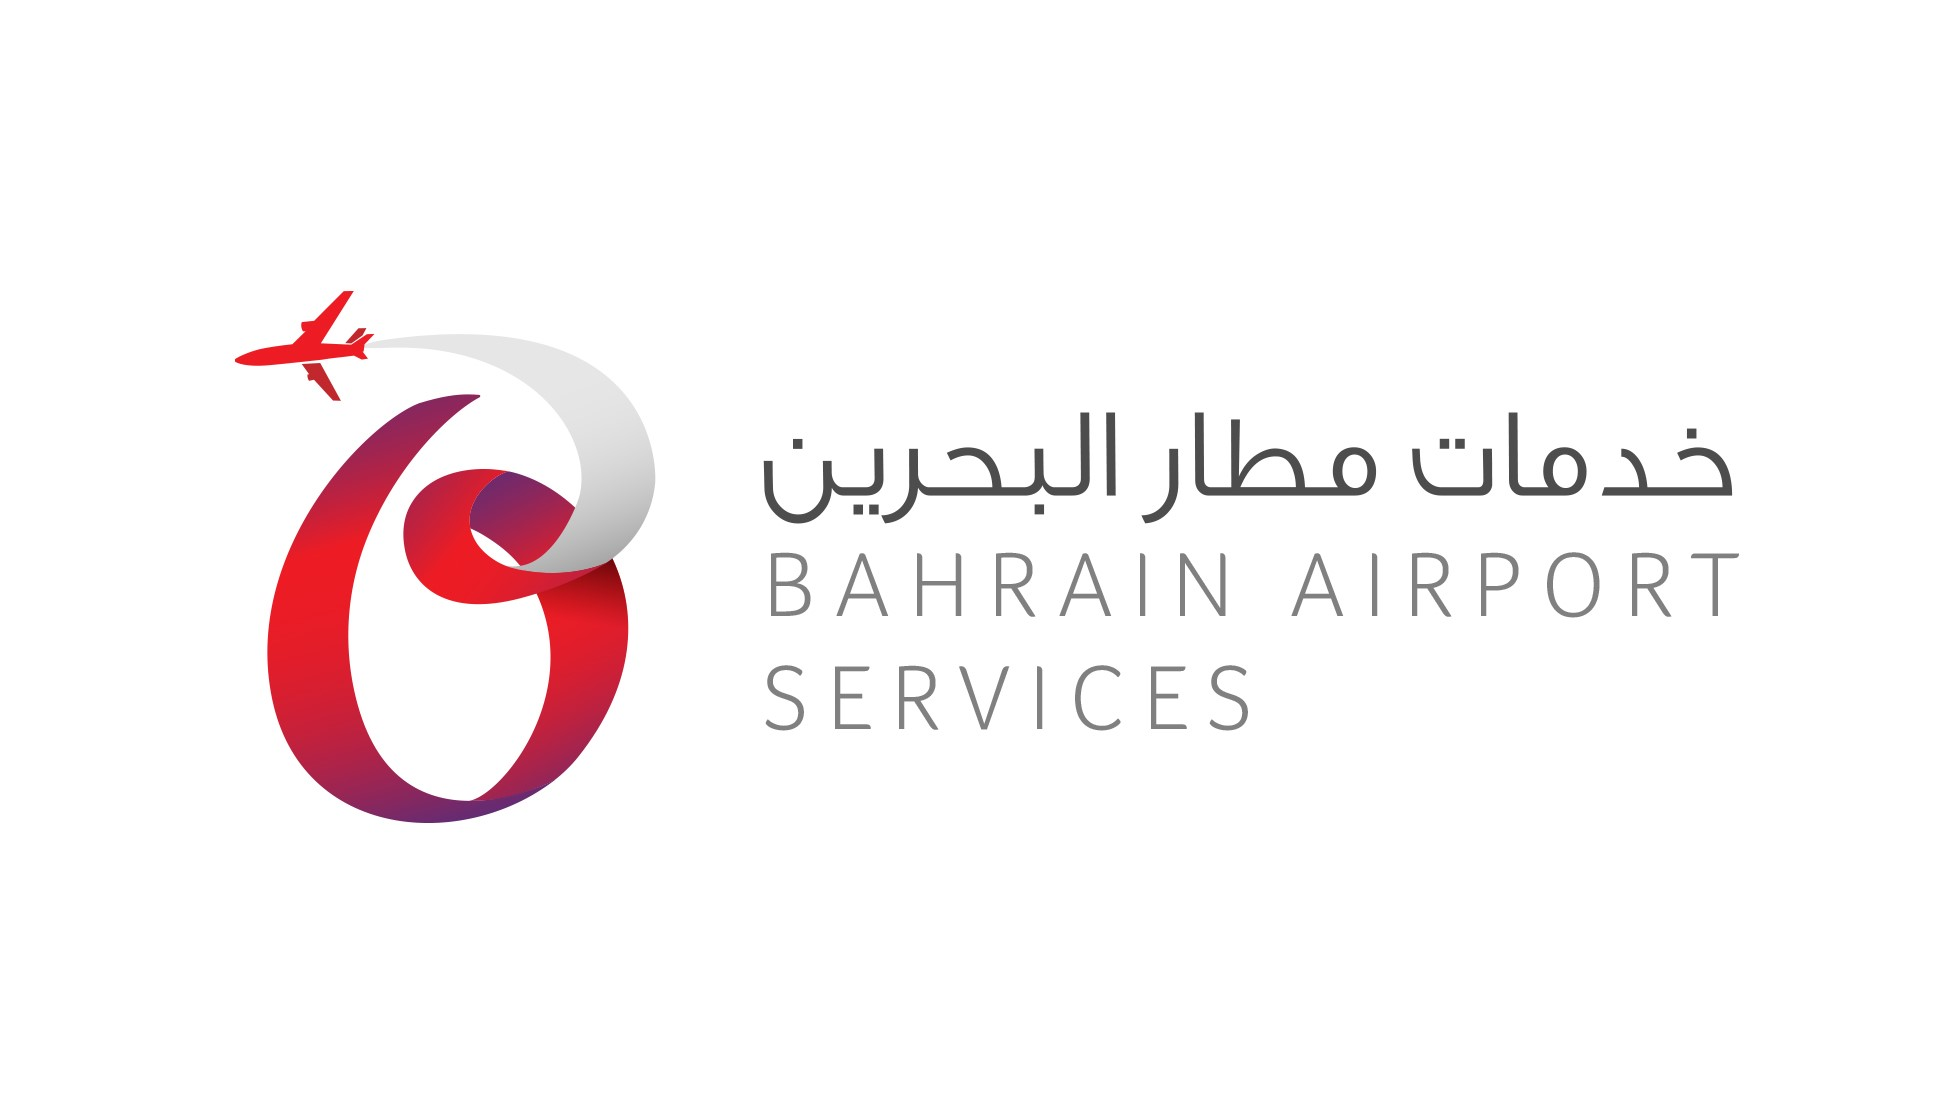 Bahrain Airport Services